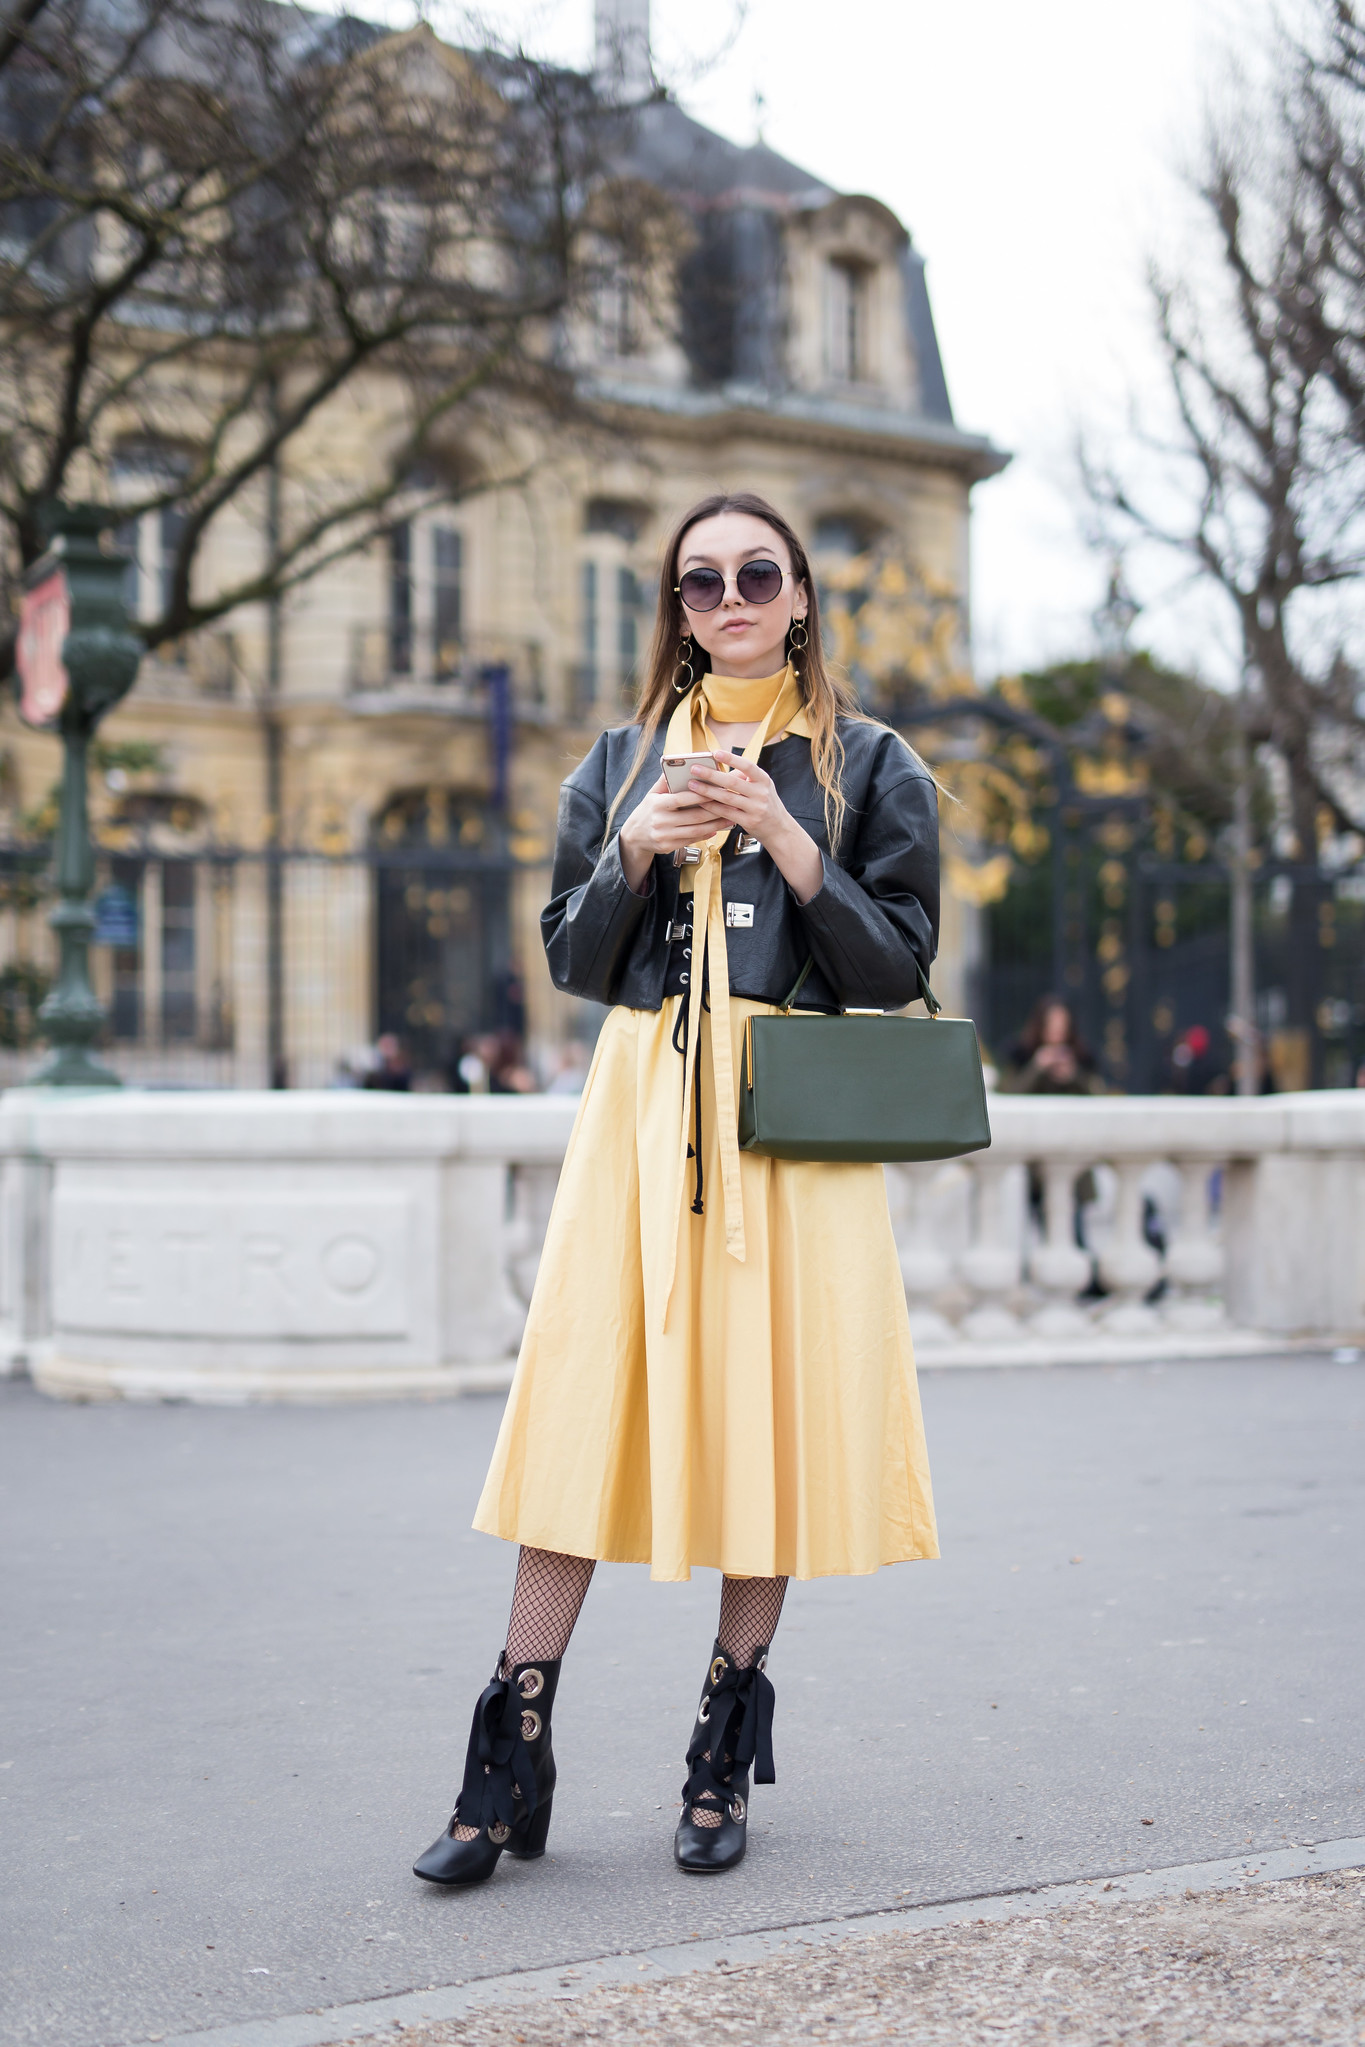 Street Style - Beatrice Gutu, Paris Fashion Week